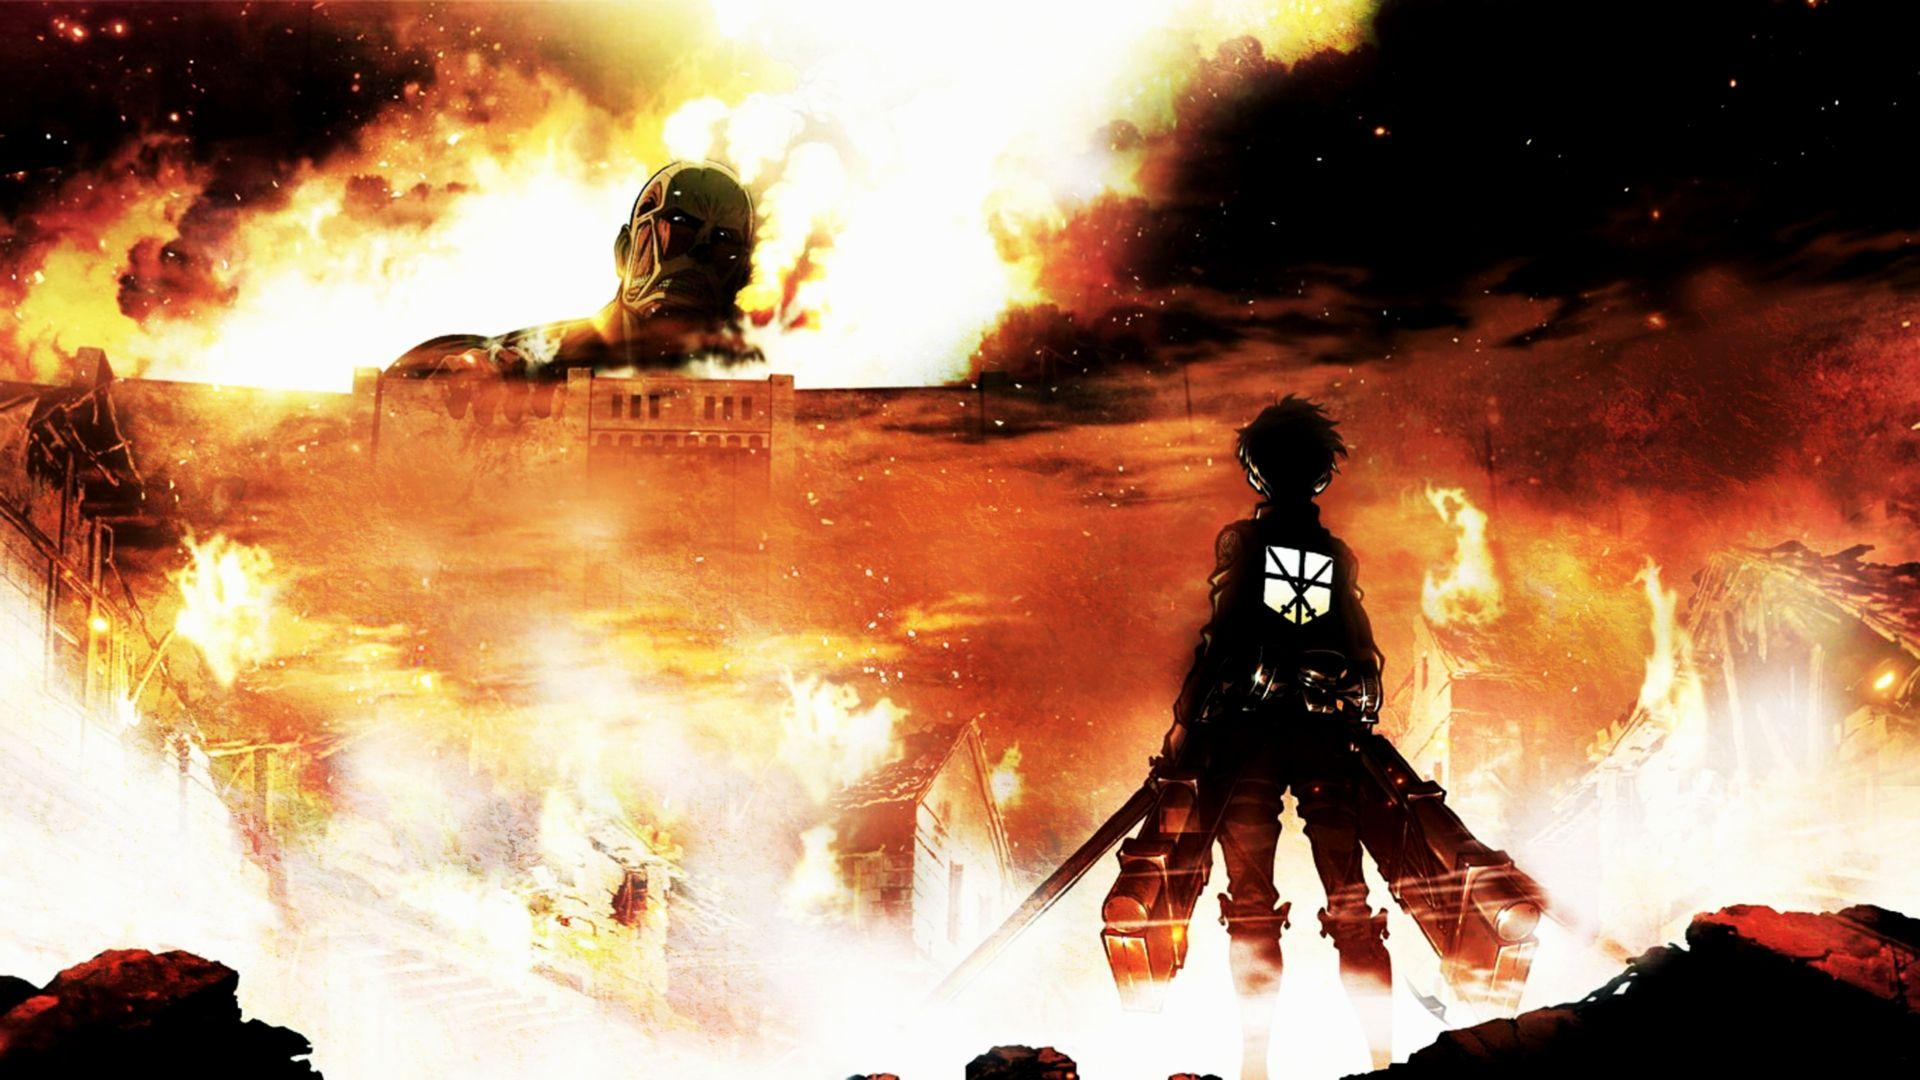 attack on titan backgrounds